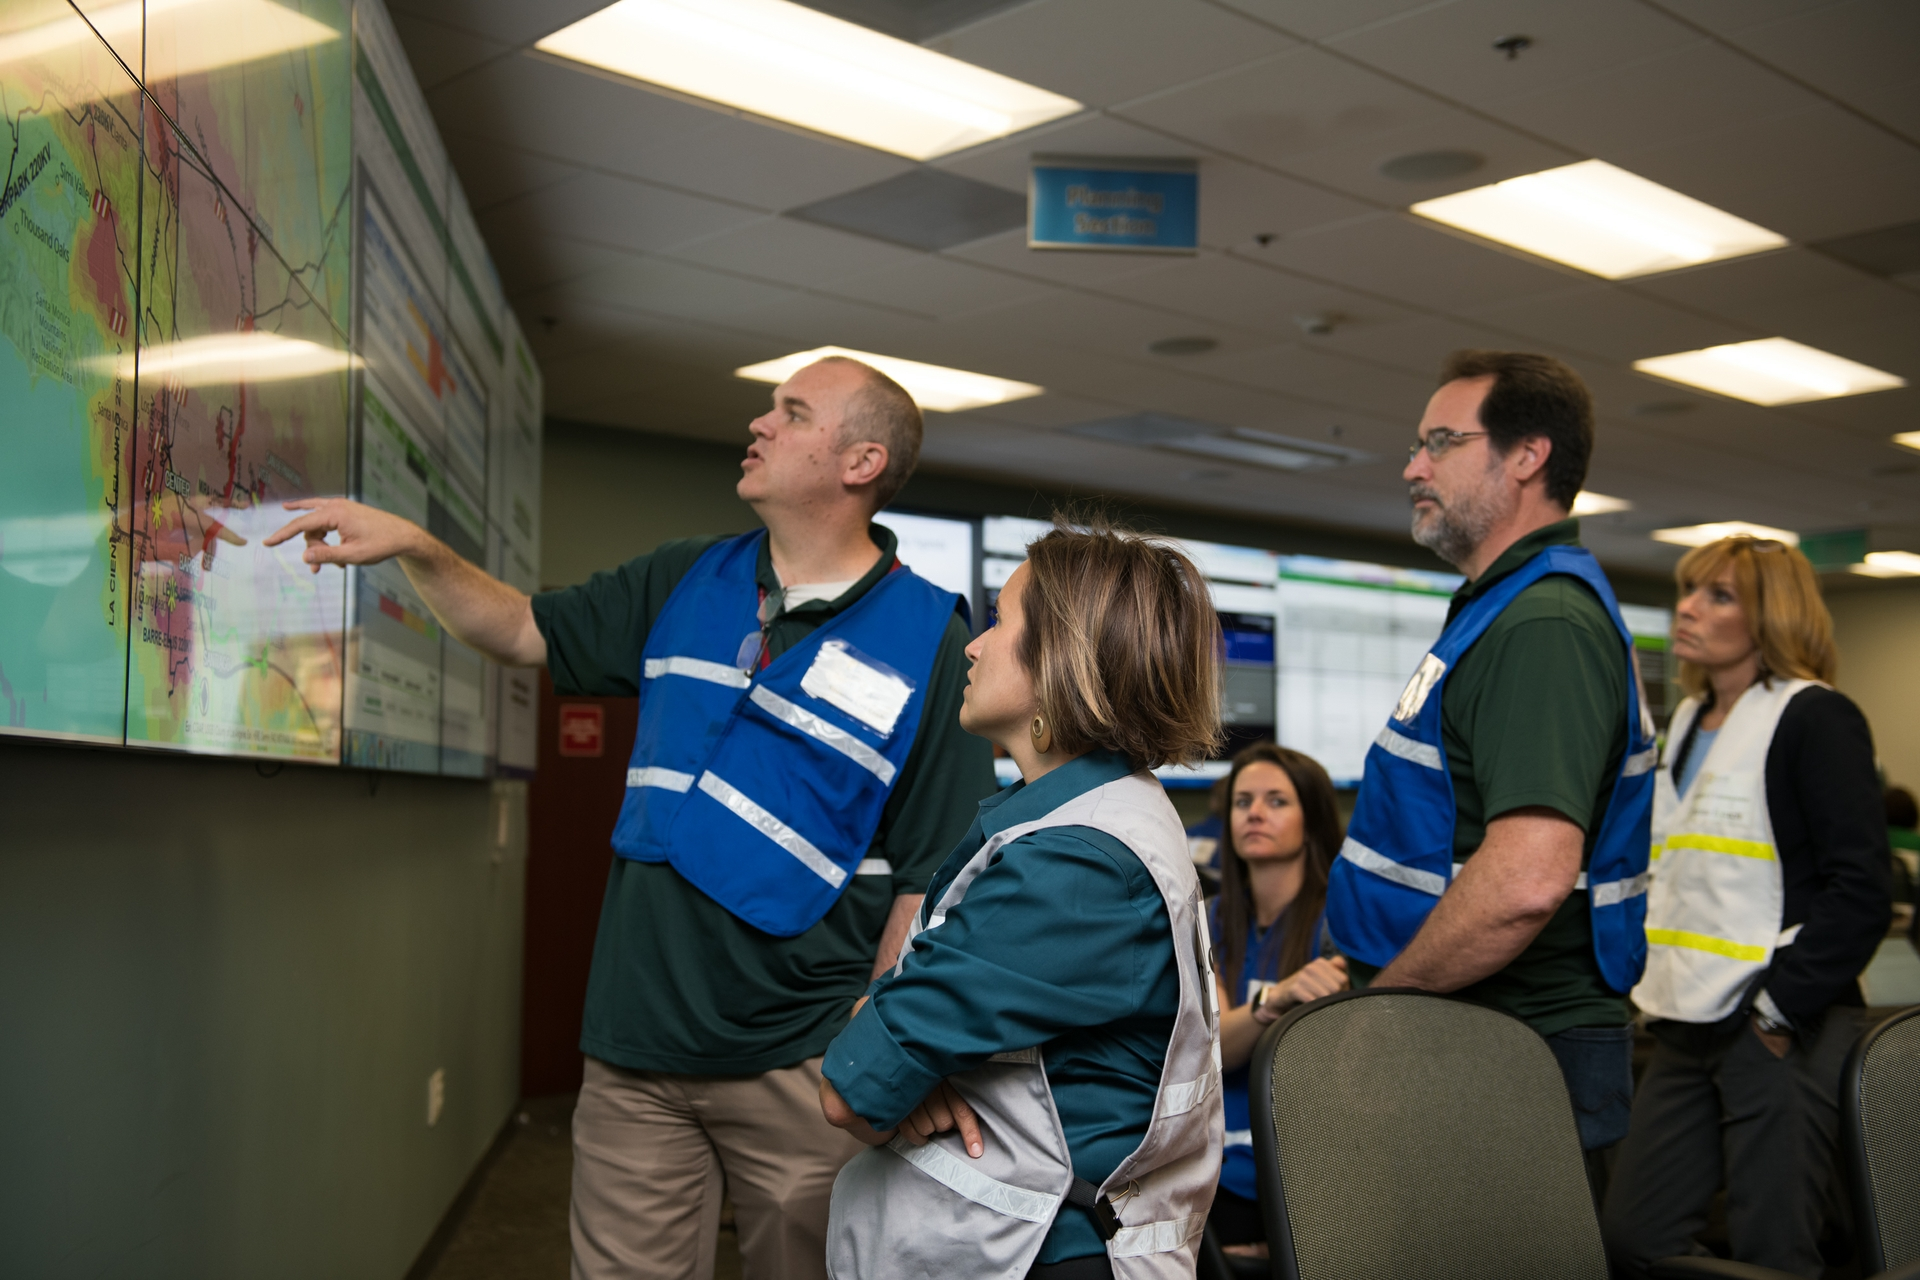 SCE teams work together to respond to simulated scenarios that could impact the region following a devastating 7.8 earthquake.